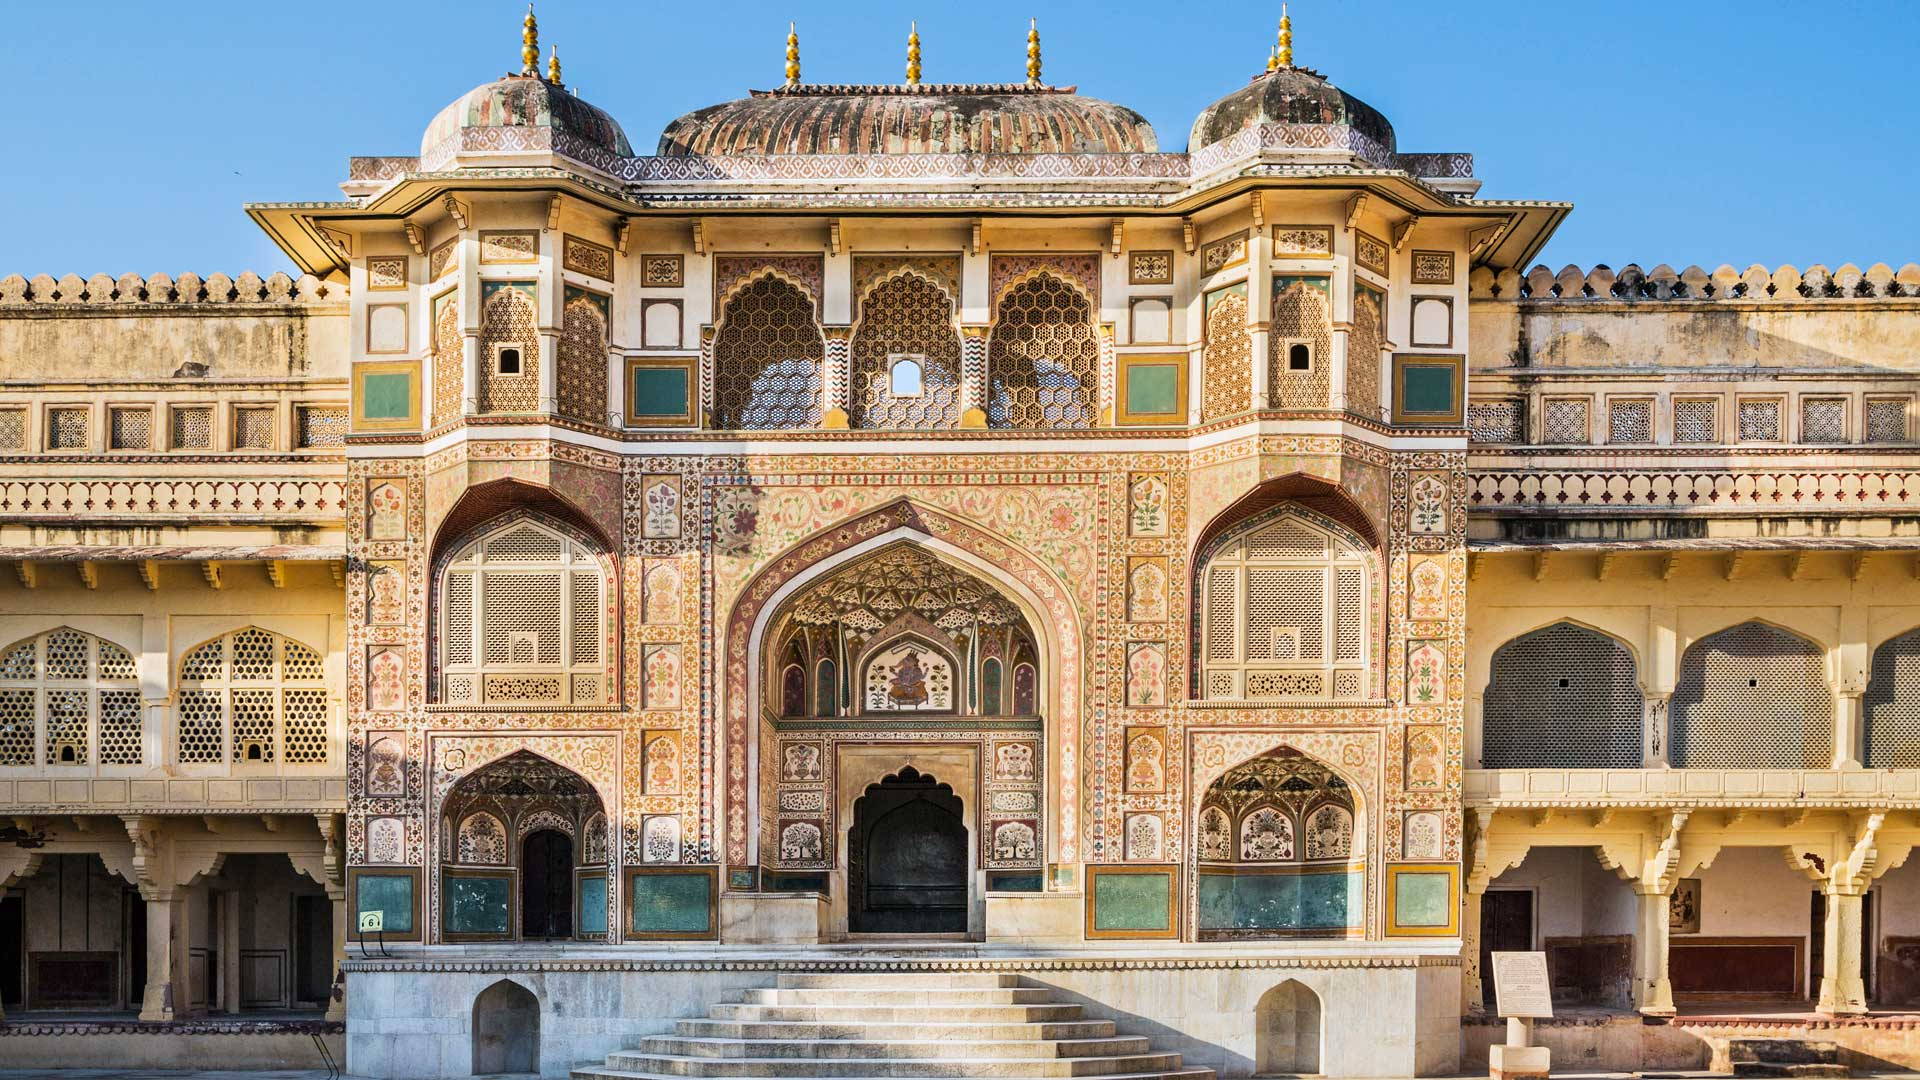 Gate leading to the main palace of the Amber Fort in Rajasthan, India with GeoEx